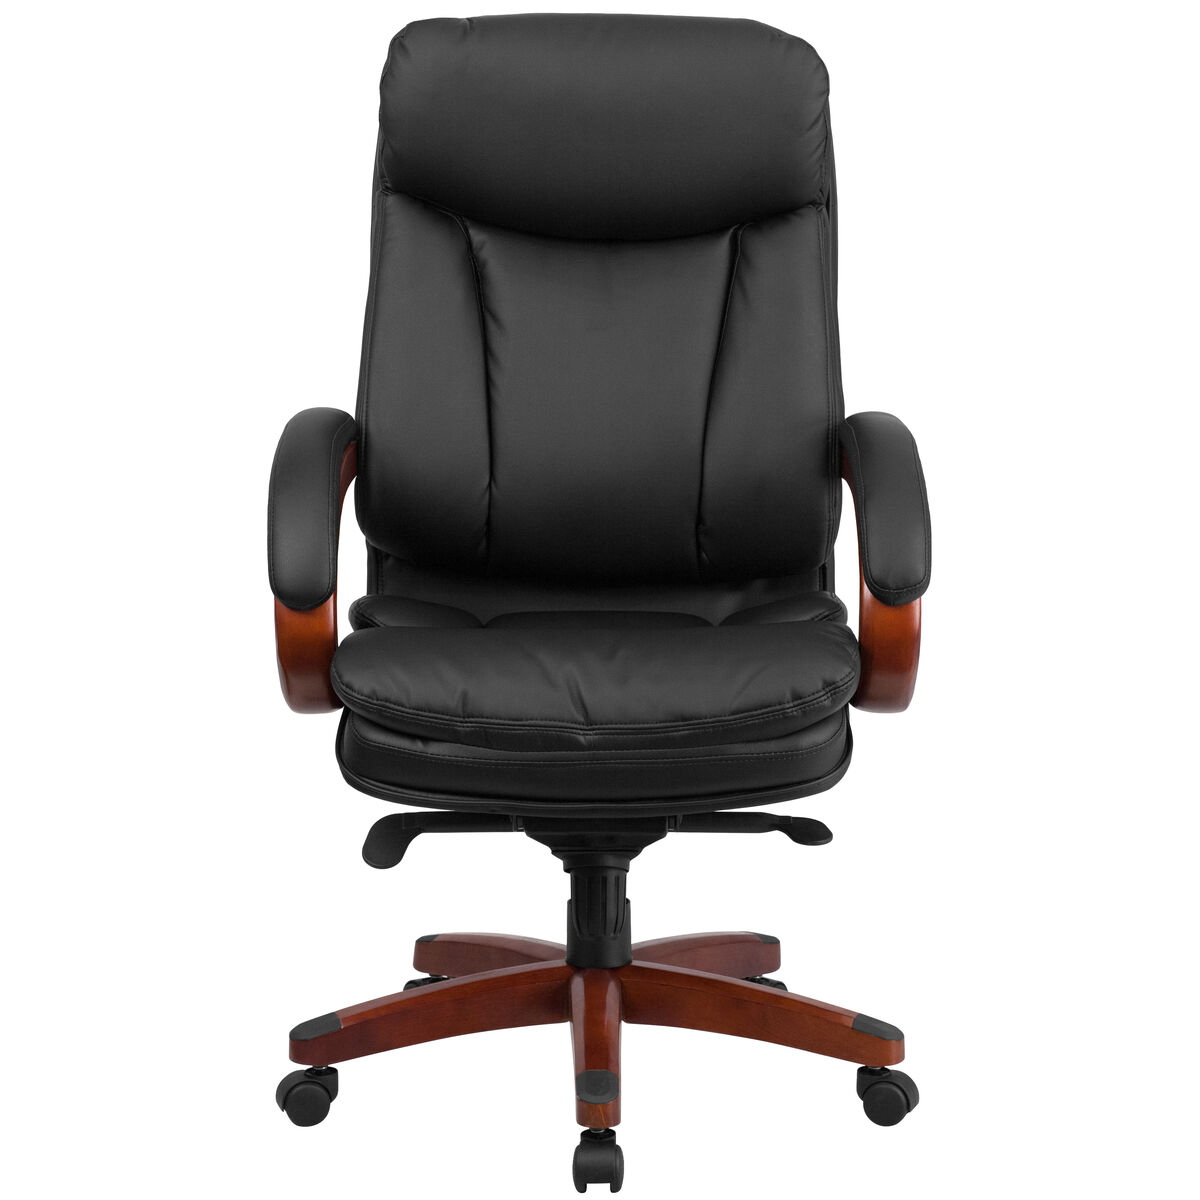 Fabulous High Back Black Leather Executive Ergonomic Office Chair With Synchro Tilt Mechanism Mahogany Wood Base And Arms Spiritservingveterans Wood Chair Design Ideas Spiritservingveteransorg